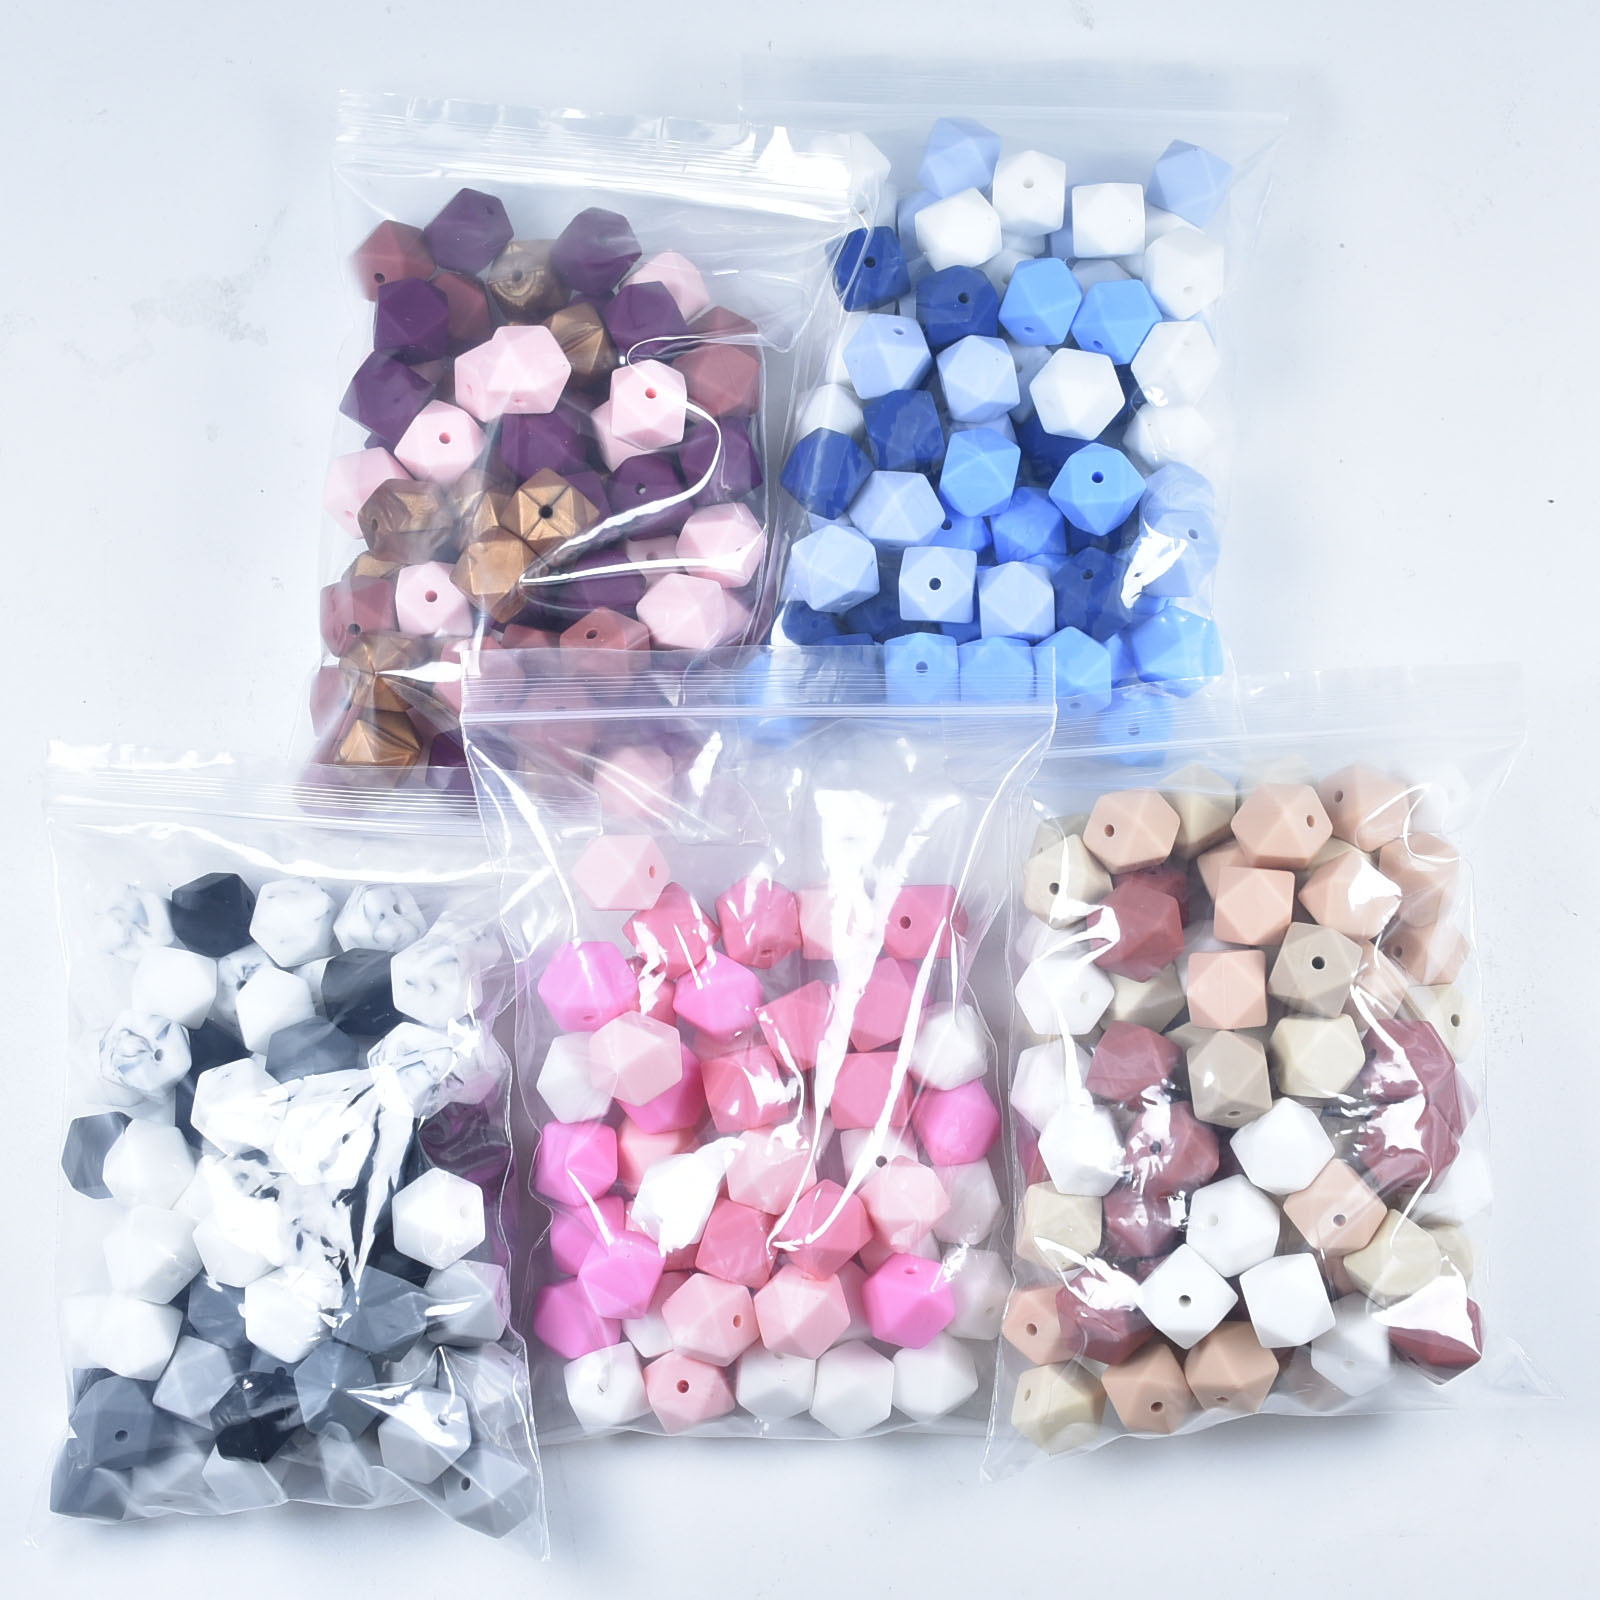 30Pcs/lot 14mm Hexagon Silicone Beads  For DIY Baby Pacifier Chain BPA Free Teething Baby Teether Ba